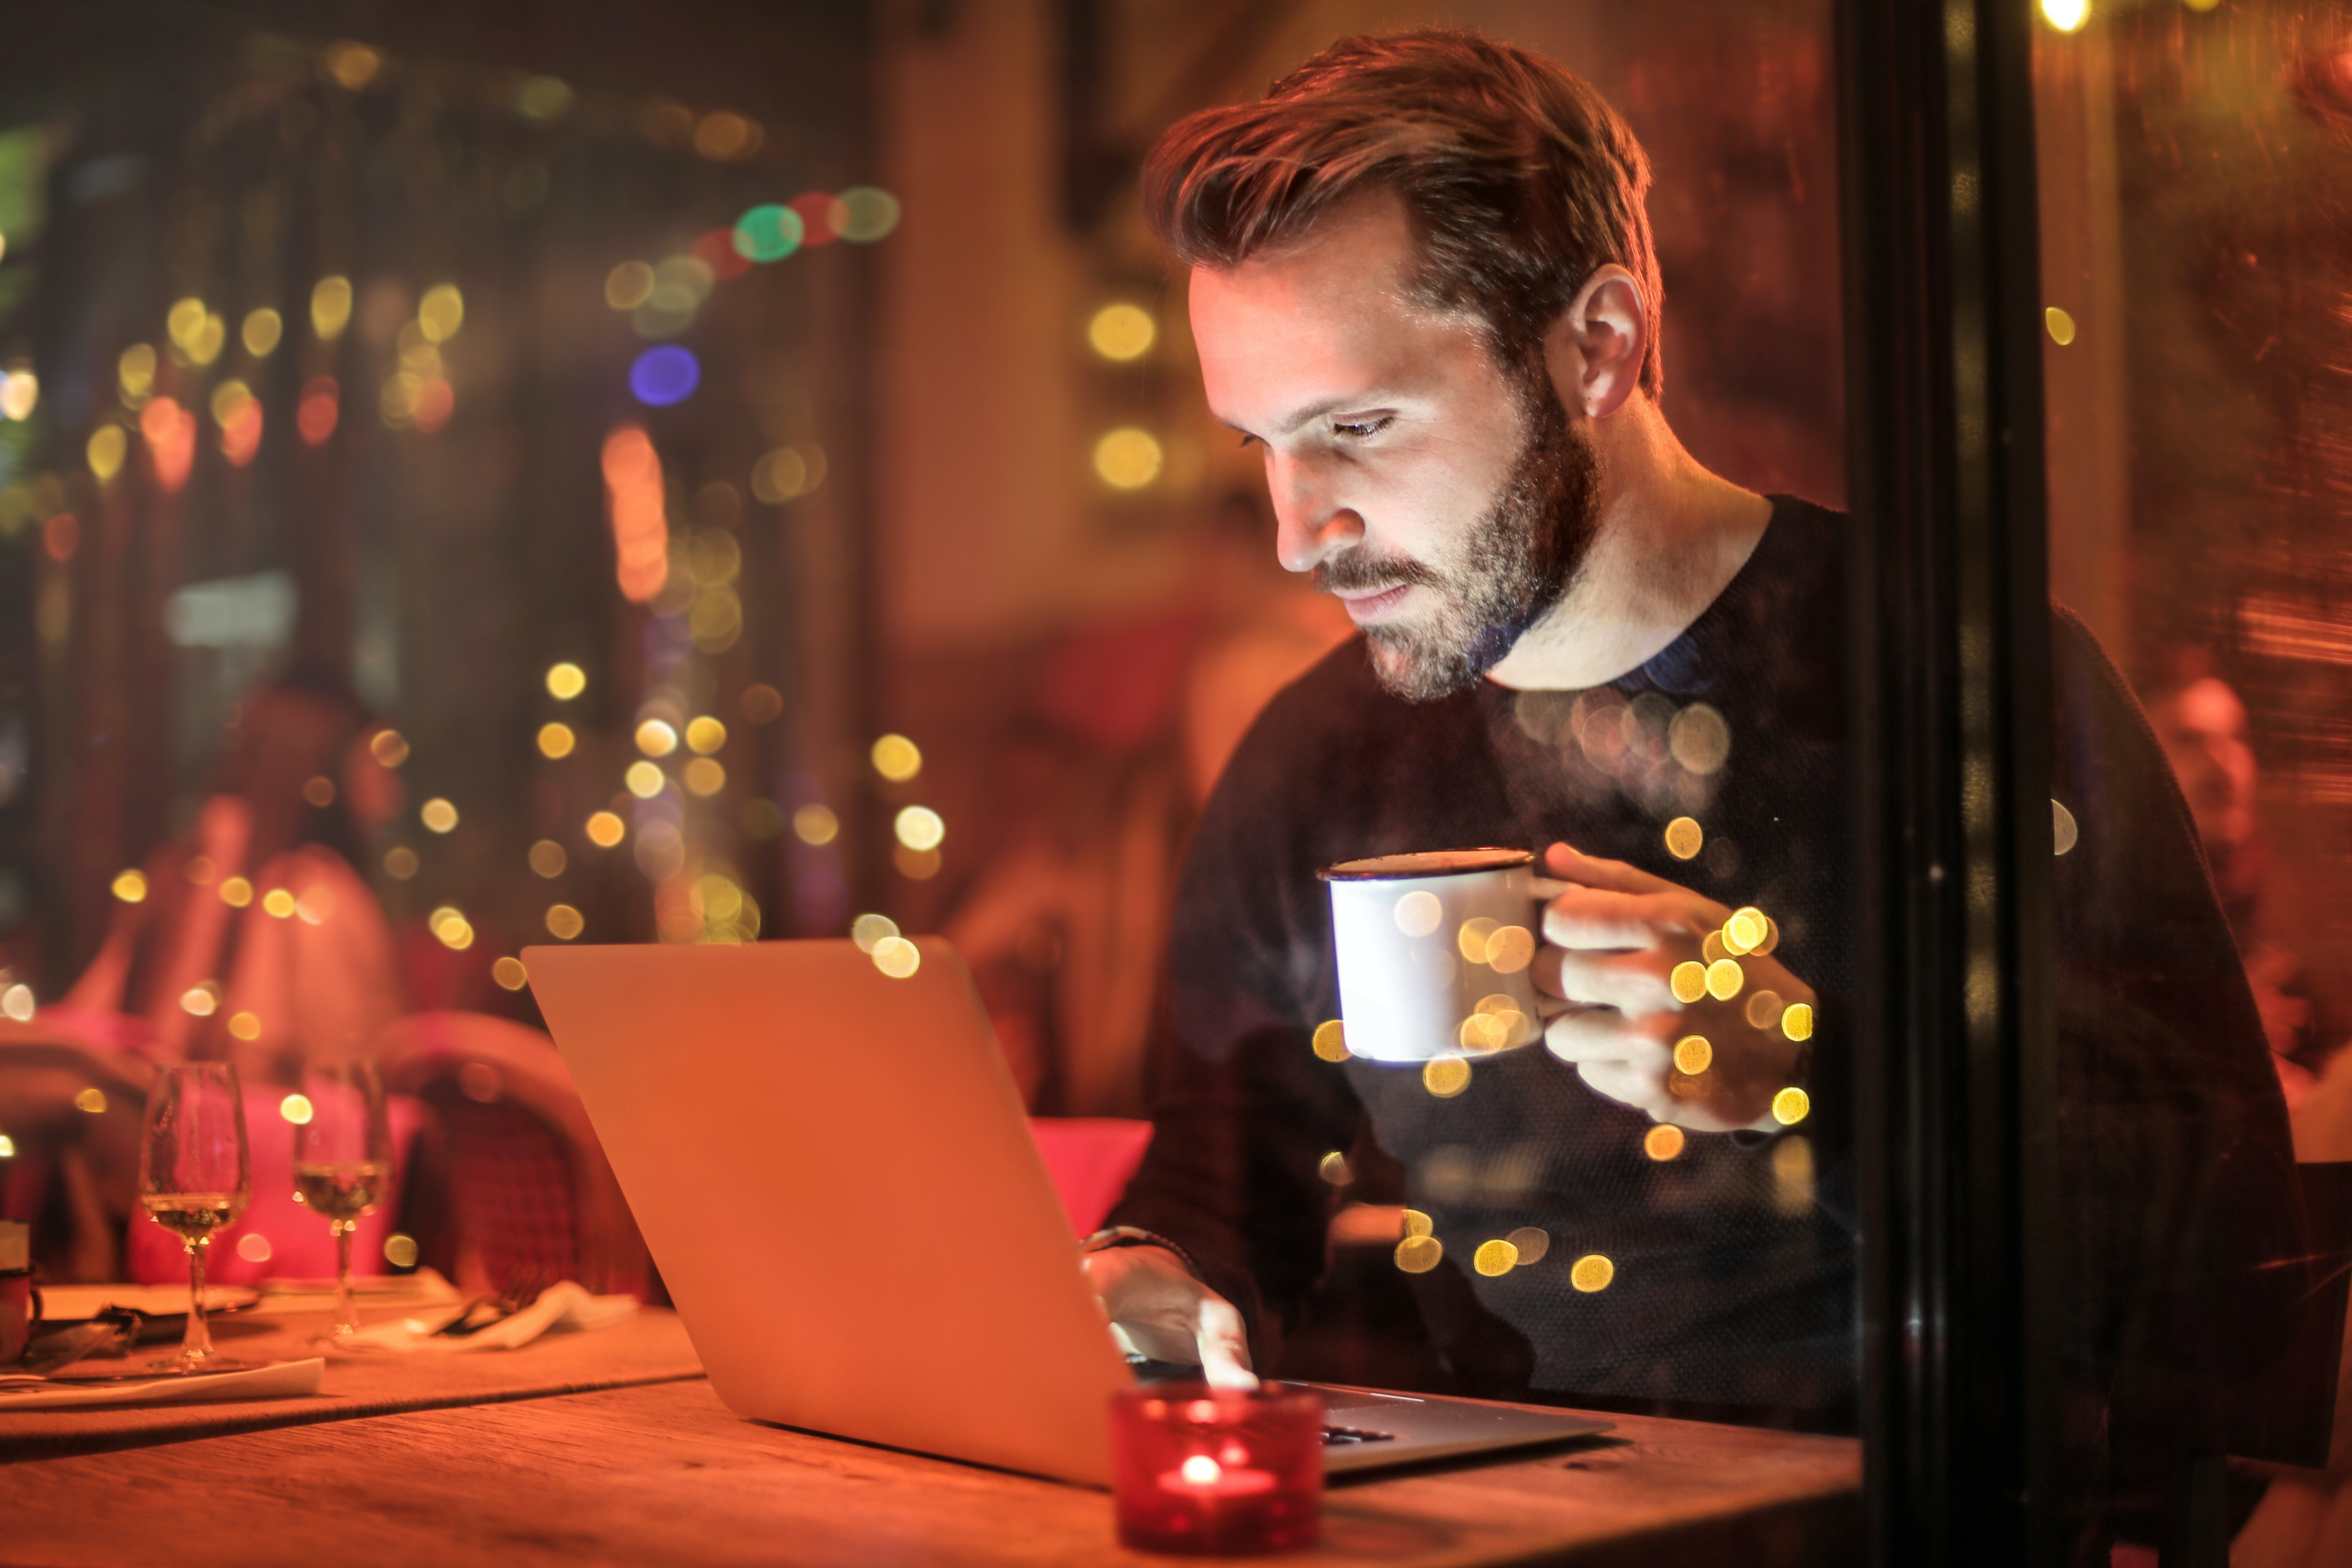 Man in a black sweater holding a cup of coffee and staring down at his computer.